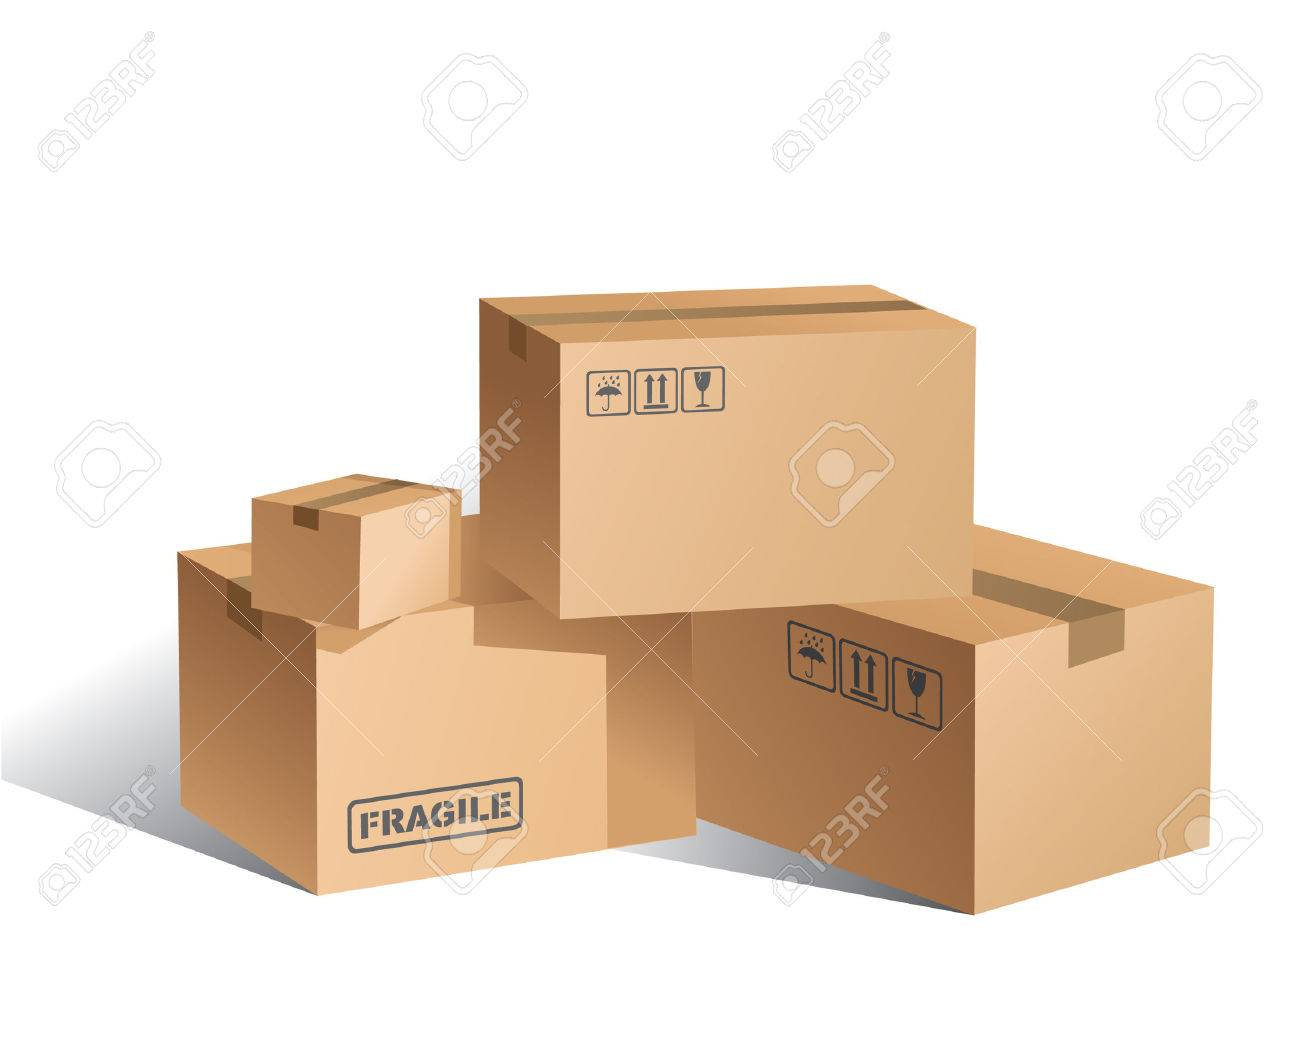 Boxes Stock Vector - 6580878